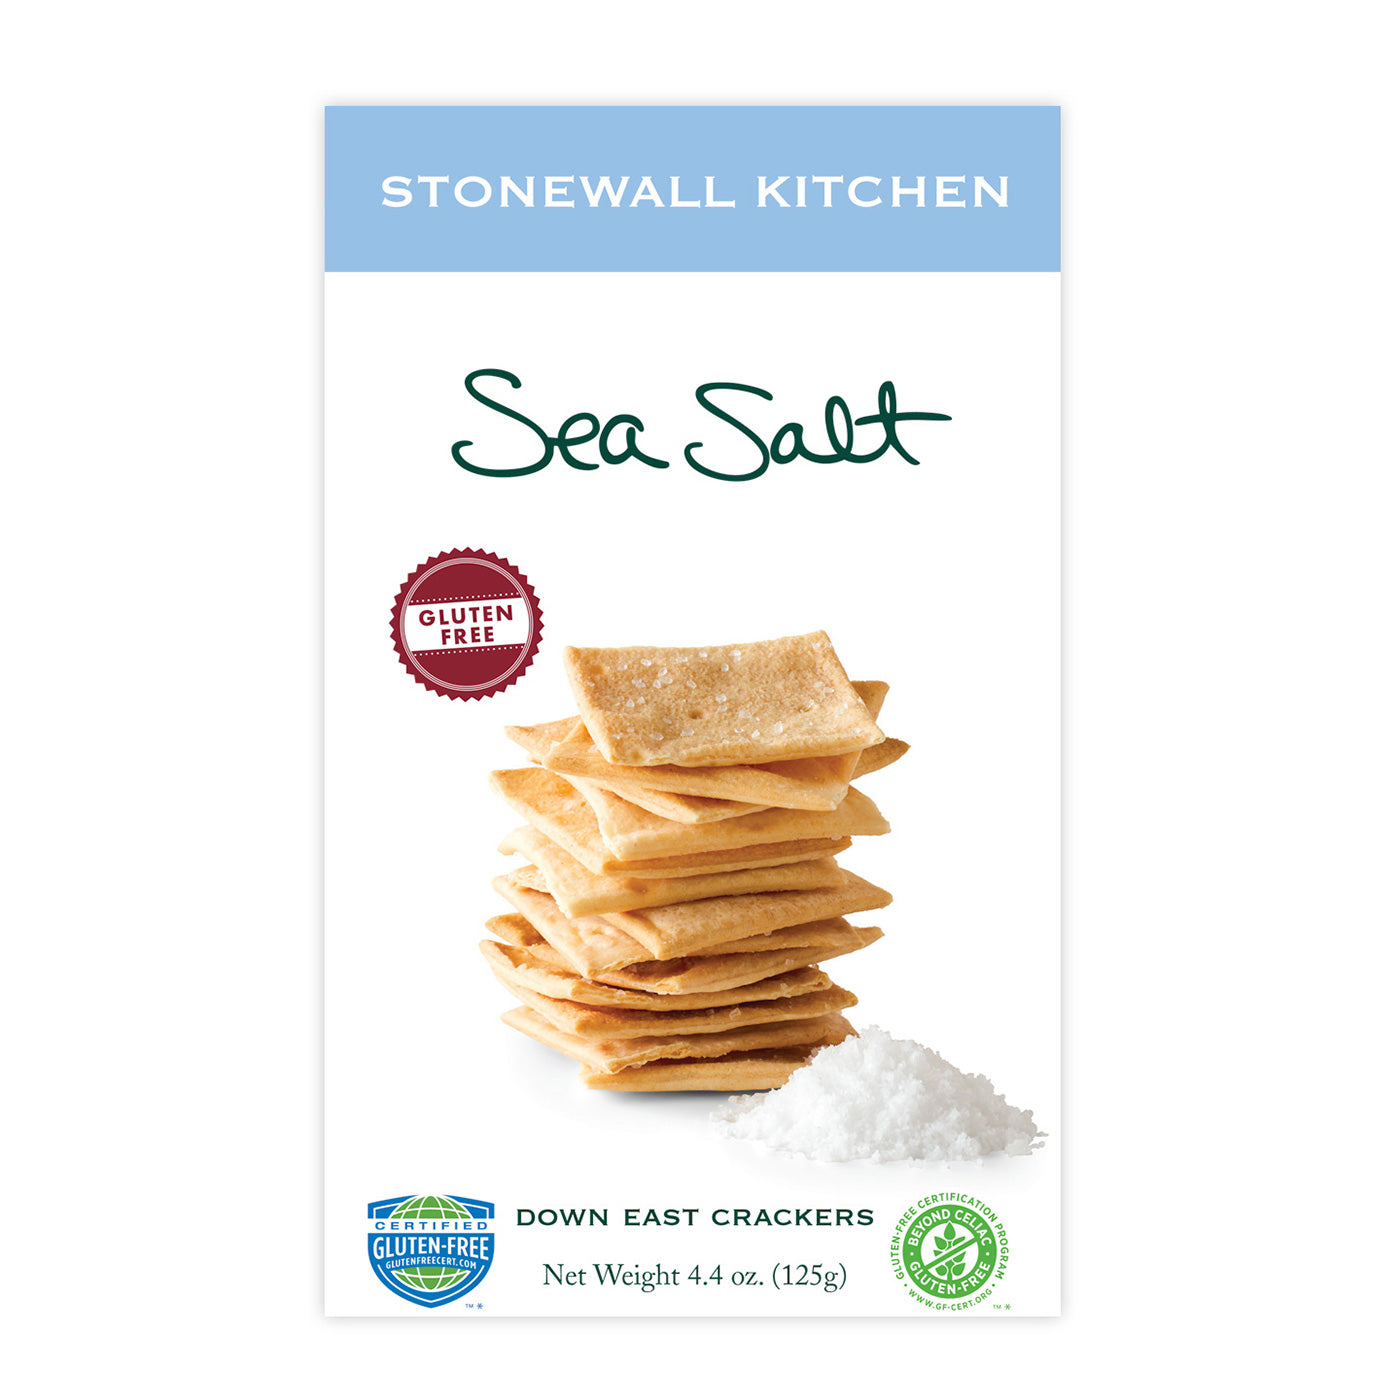 Stonewall Kitchen Gluten Free Sea Salt Crackers 4.4 oz.